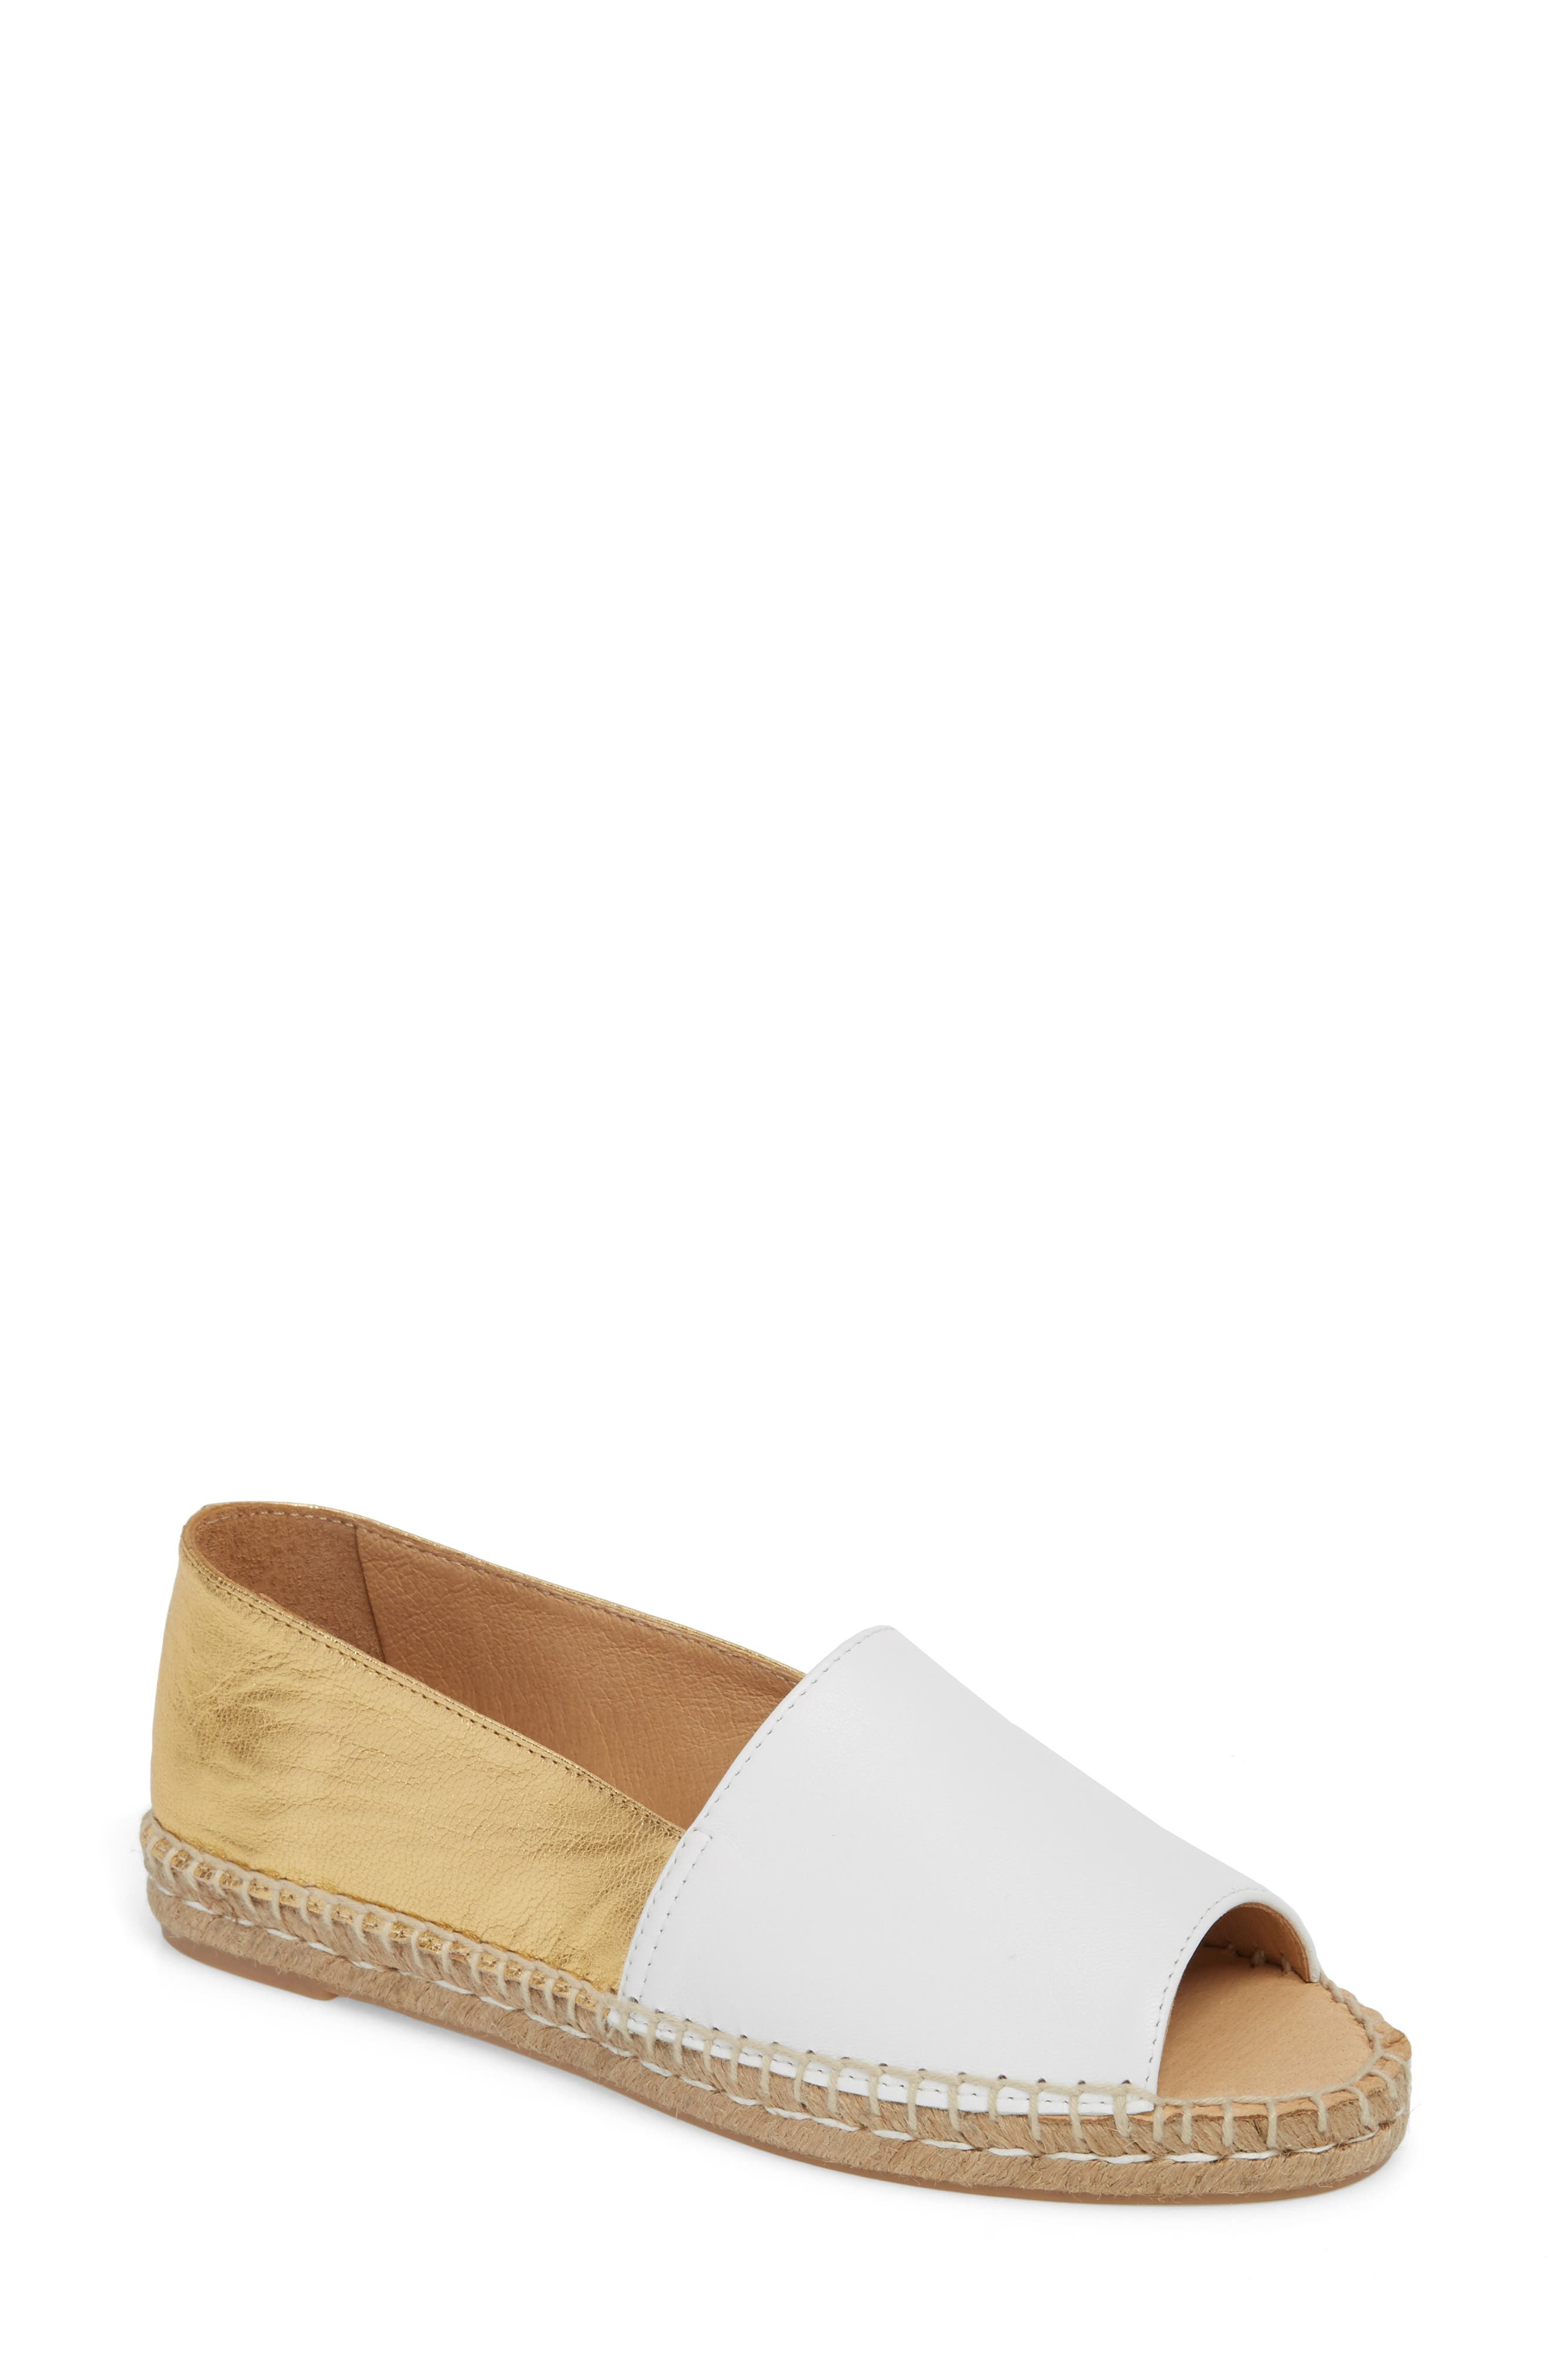 Milly Espadrille,                             Main thumbnail 2, color,